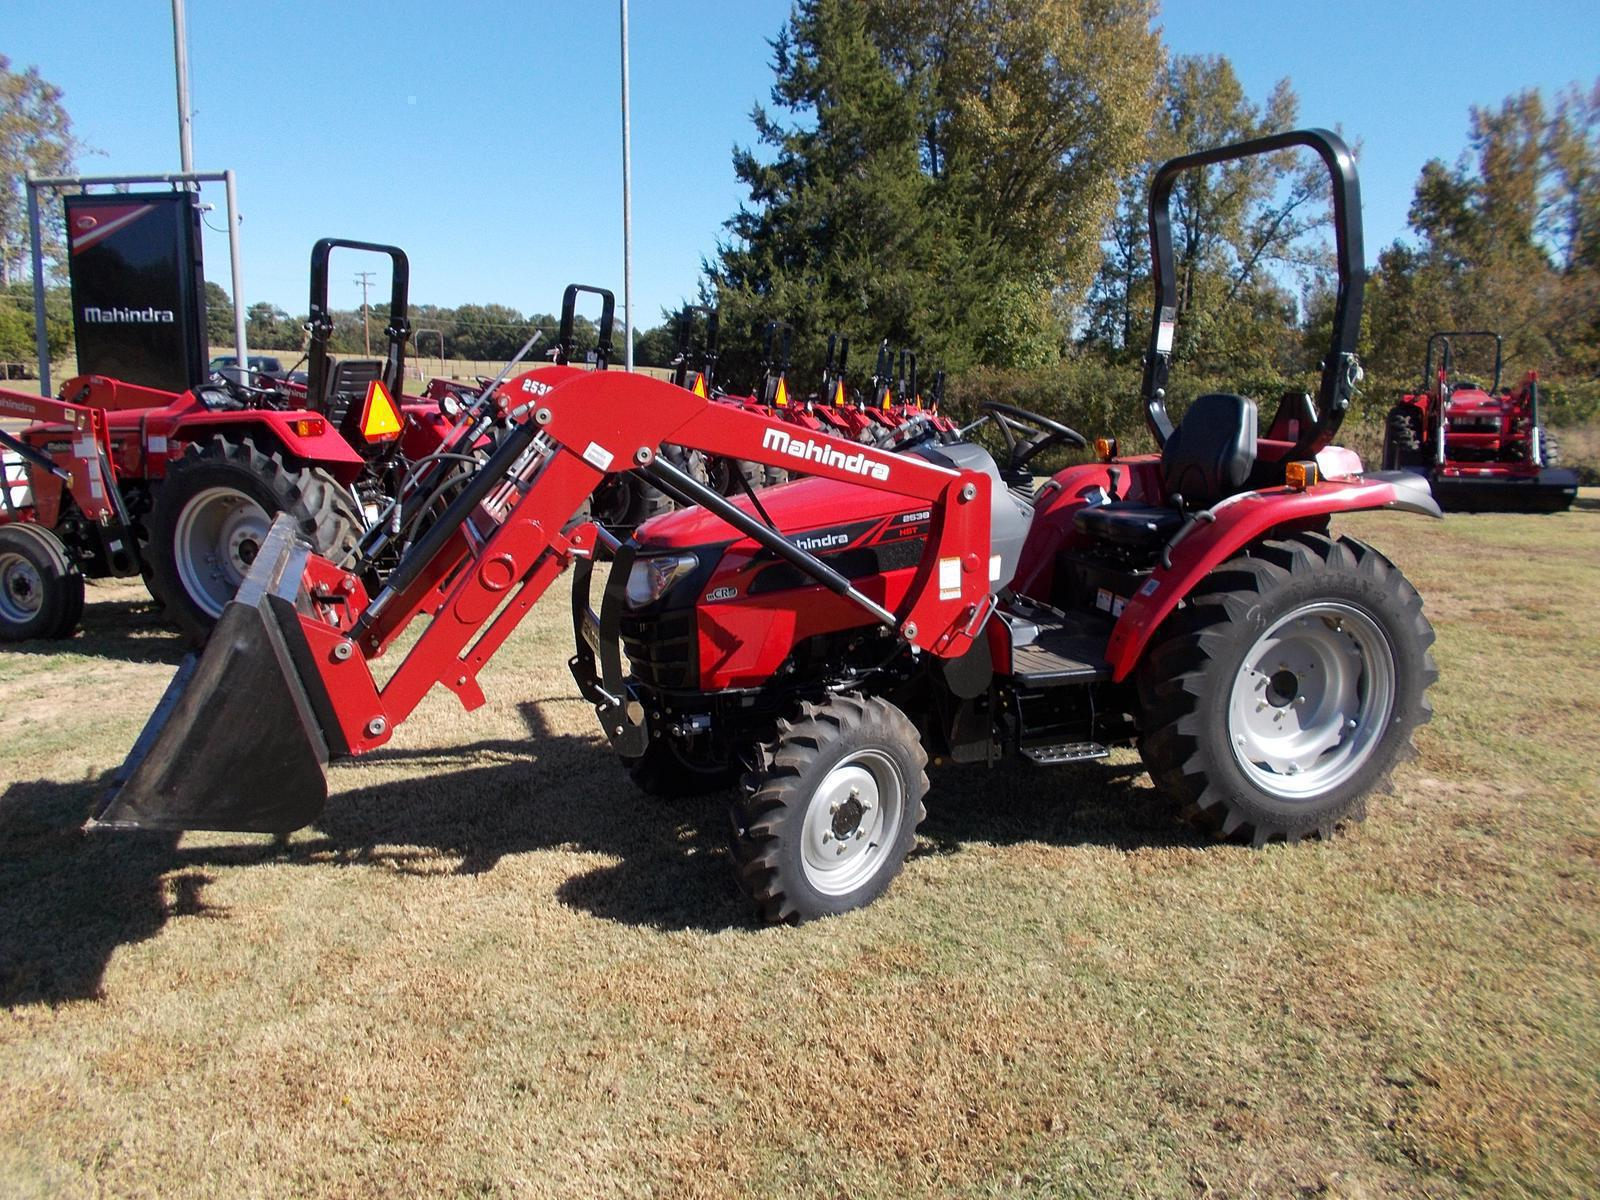 2538 4wd Hst Mahindra Tractors - Year of Clean Water